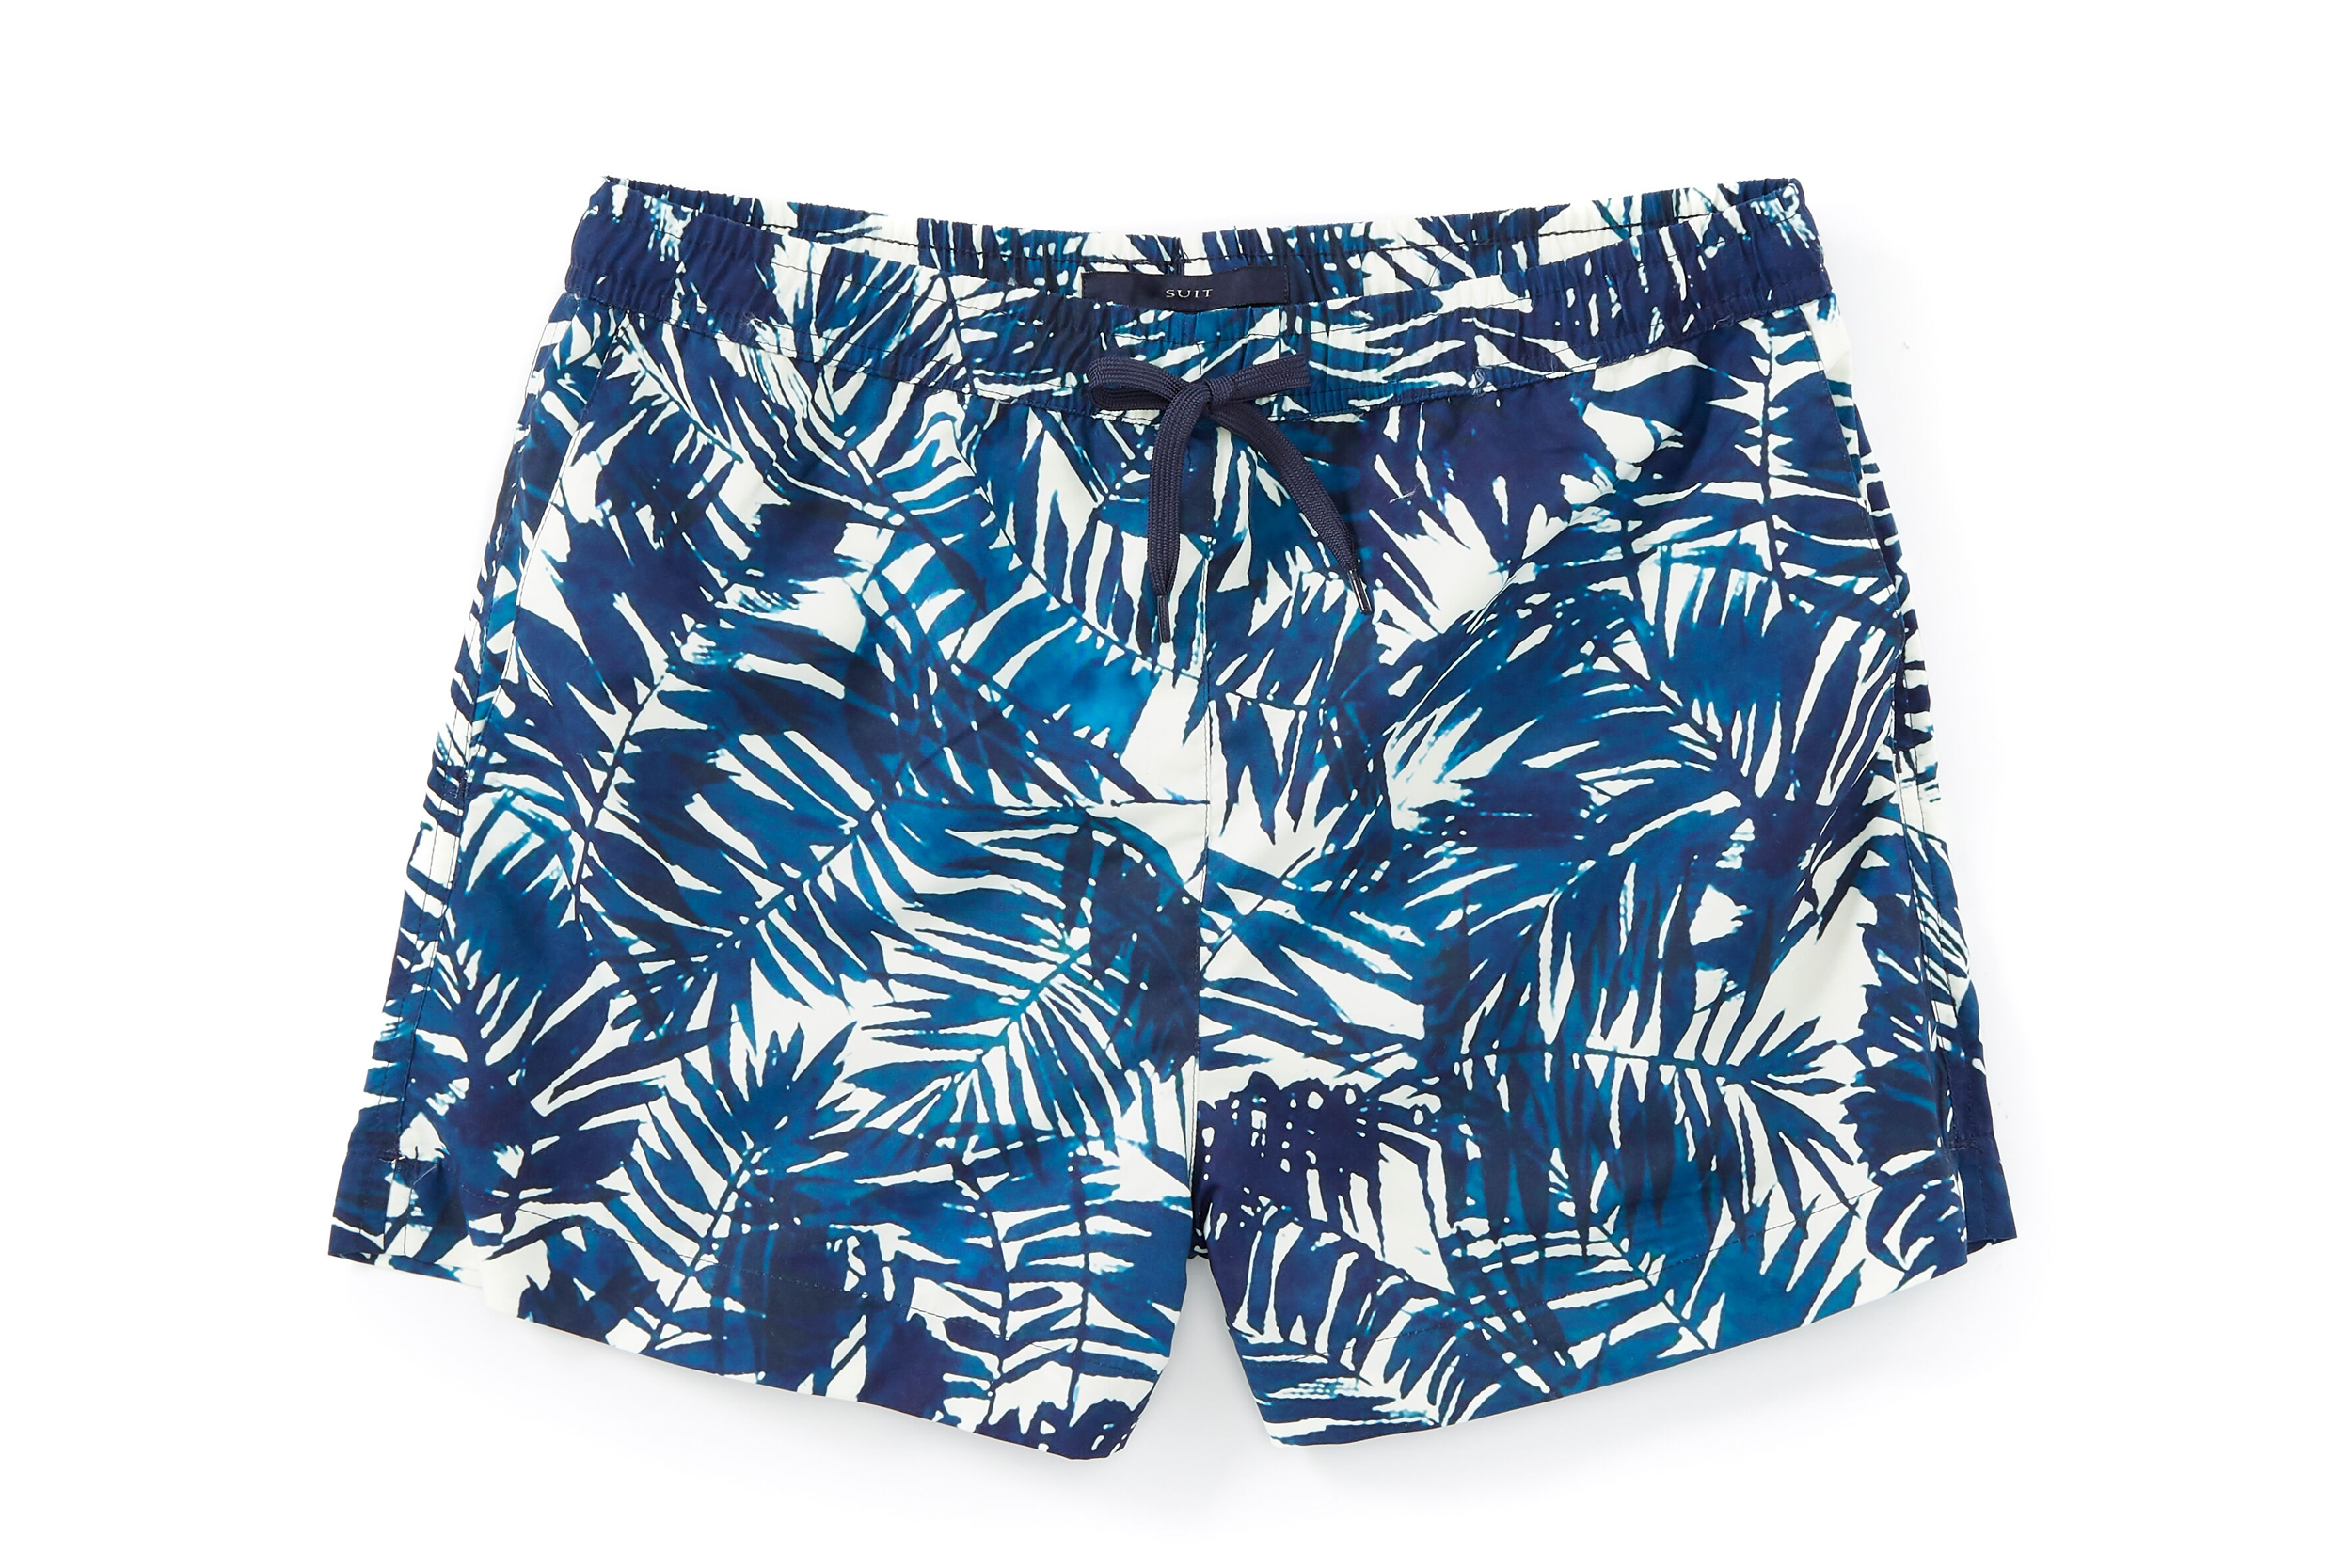 Mens Swim Trunks Ocean Waves Aqua Quick Dry Drawstring Surfing Beach Board Shorts with Pockets